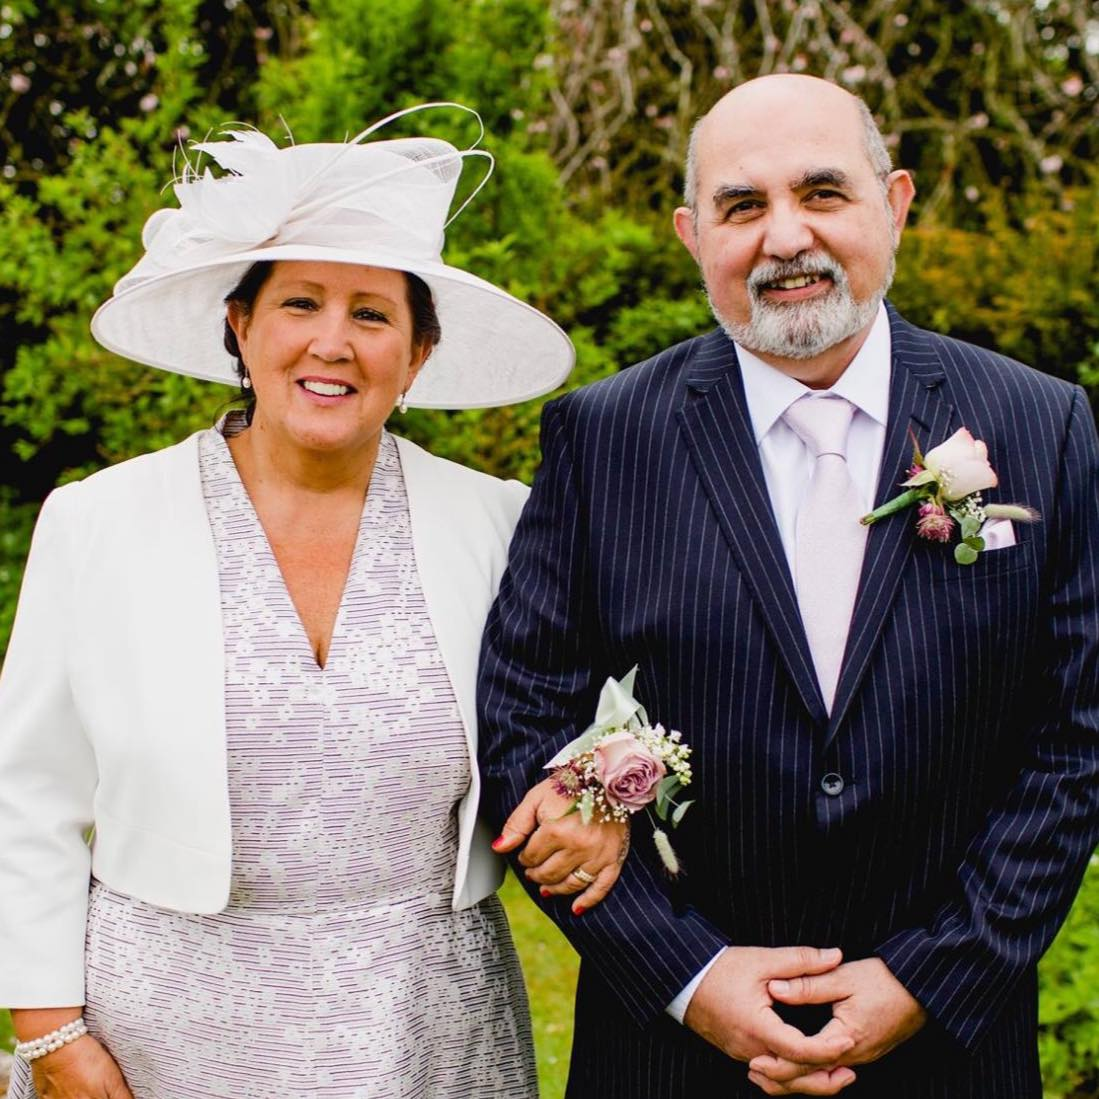 Hats Francise wedding hats for hire